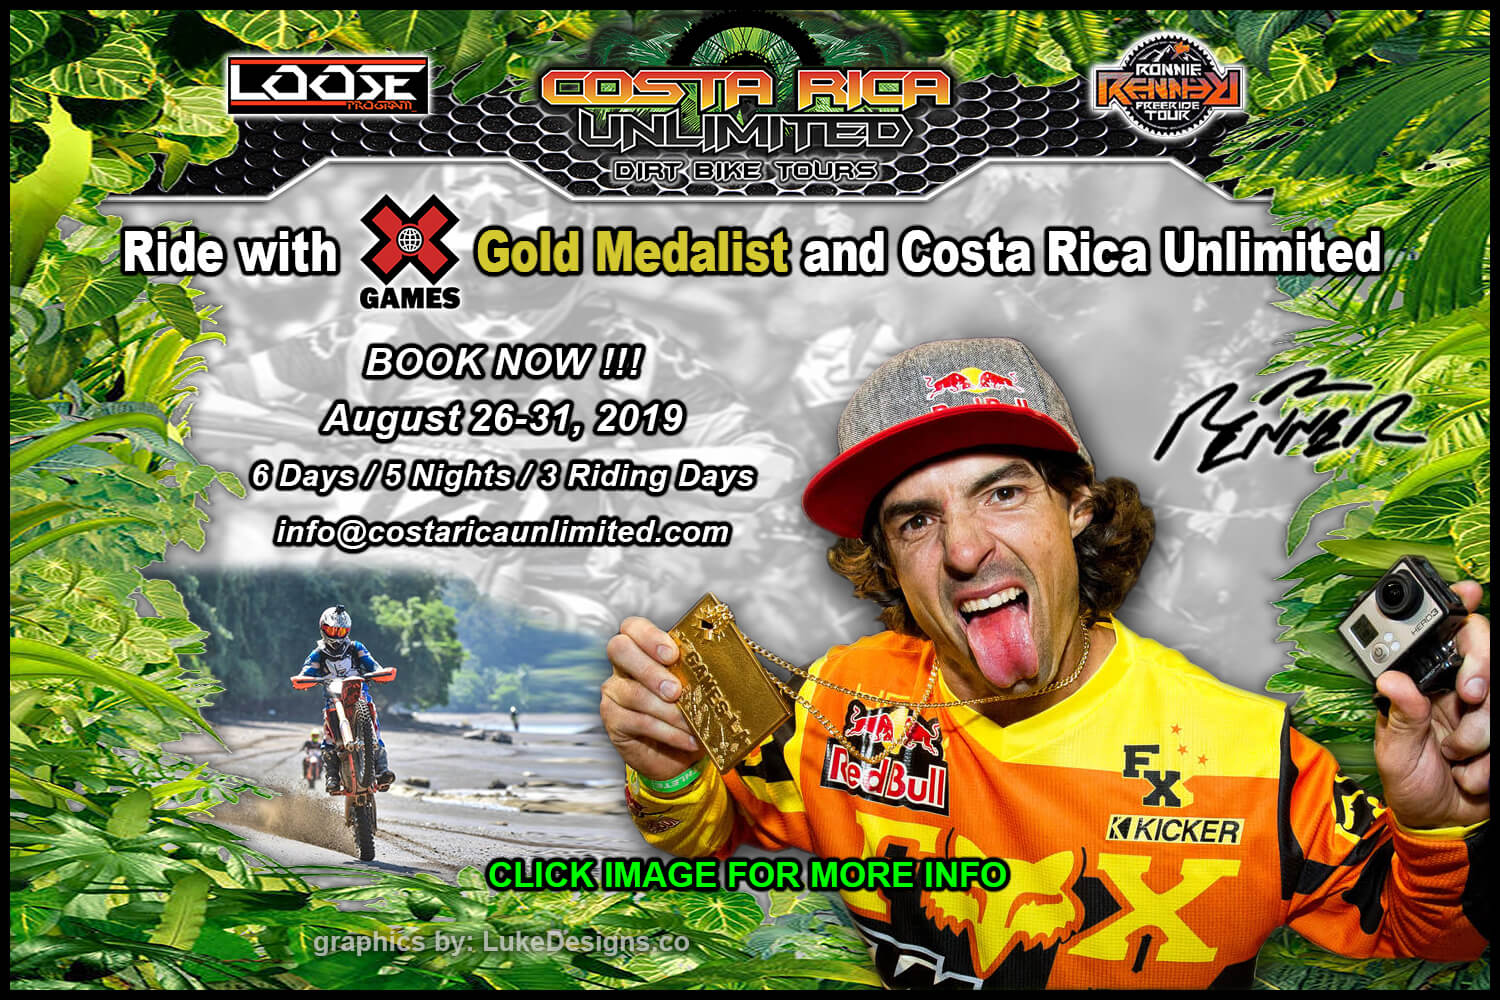 Ride with Ronnie Renner and Costa Rica Unlimited!